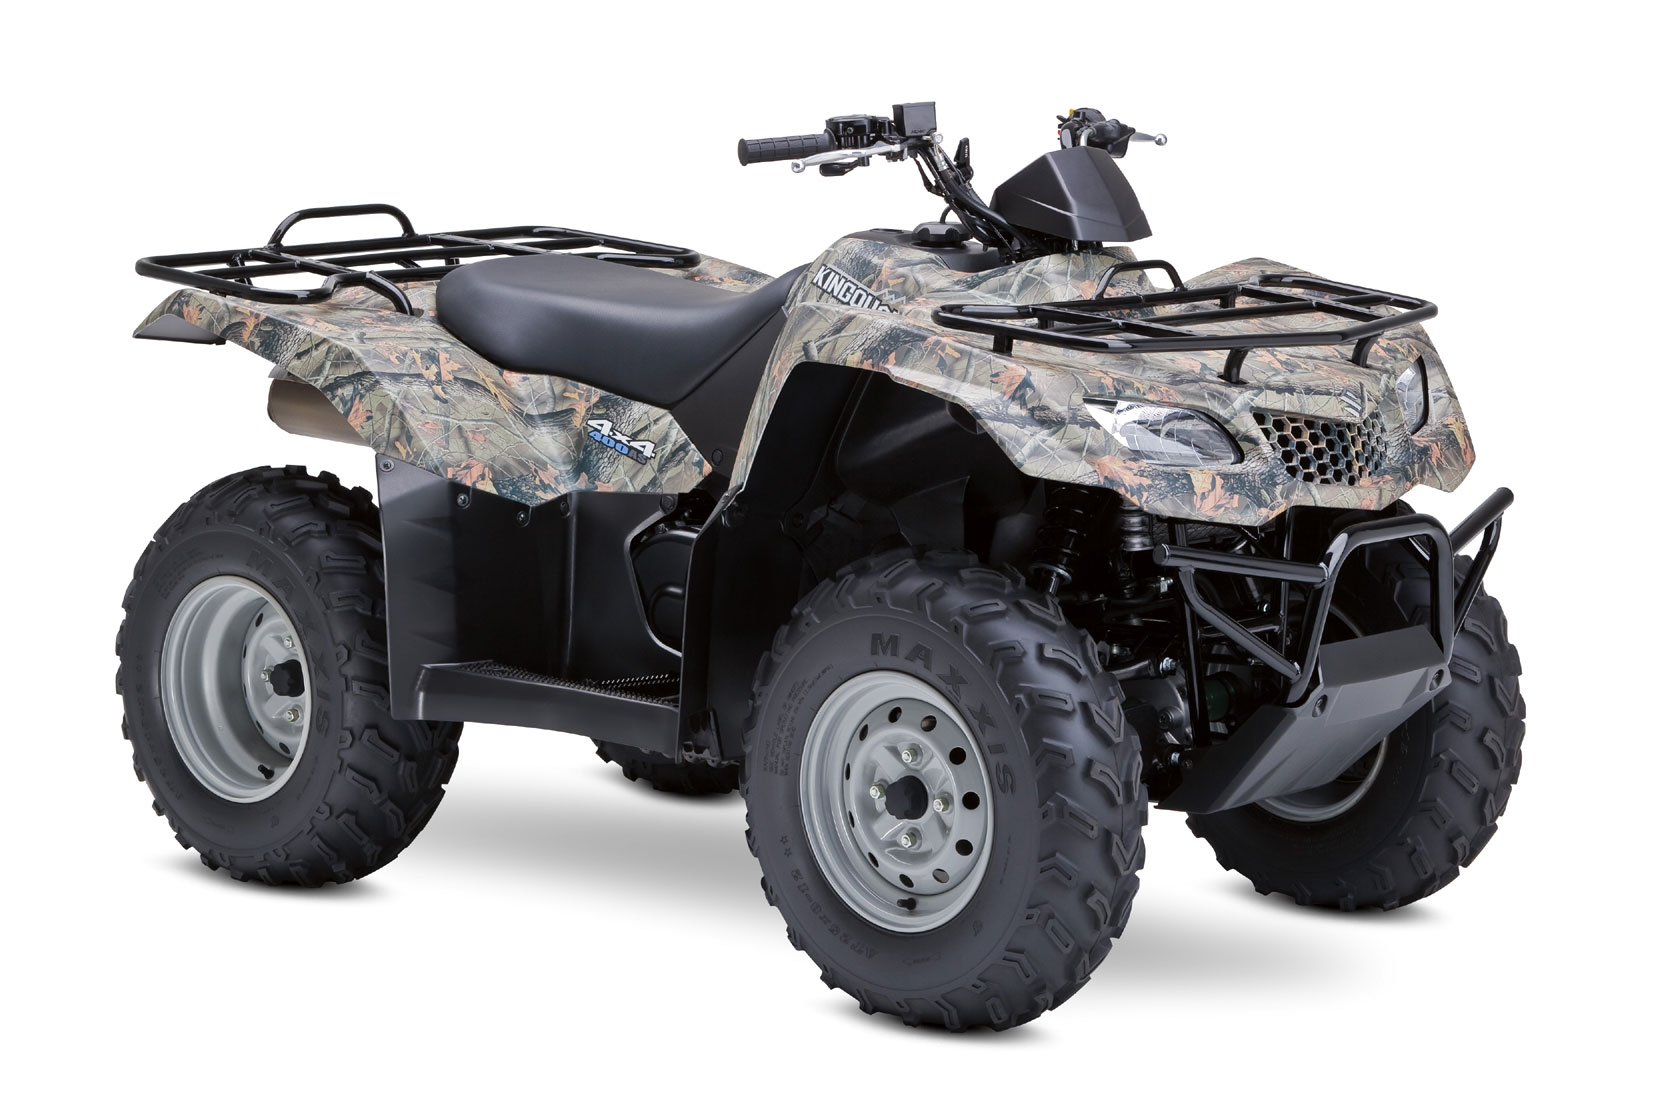 suzuki kingquad 400 as camo 2008 2009 autoevolution. Black Bedroom Furniture Sets. Home Design Ideas